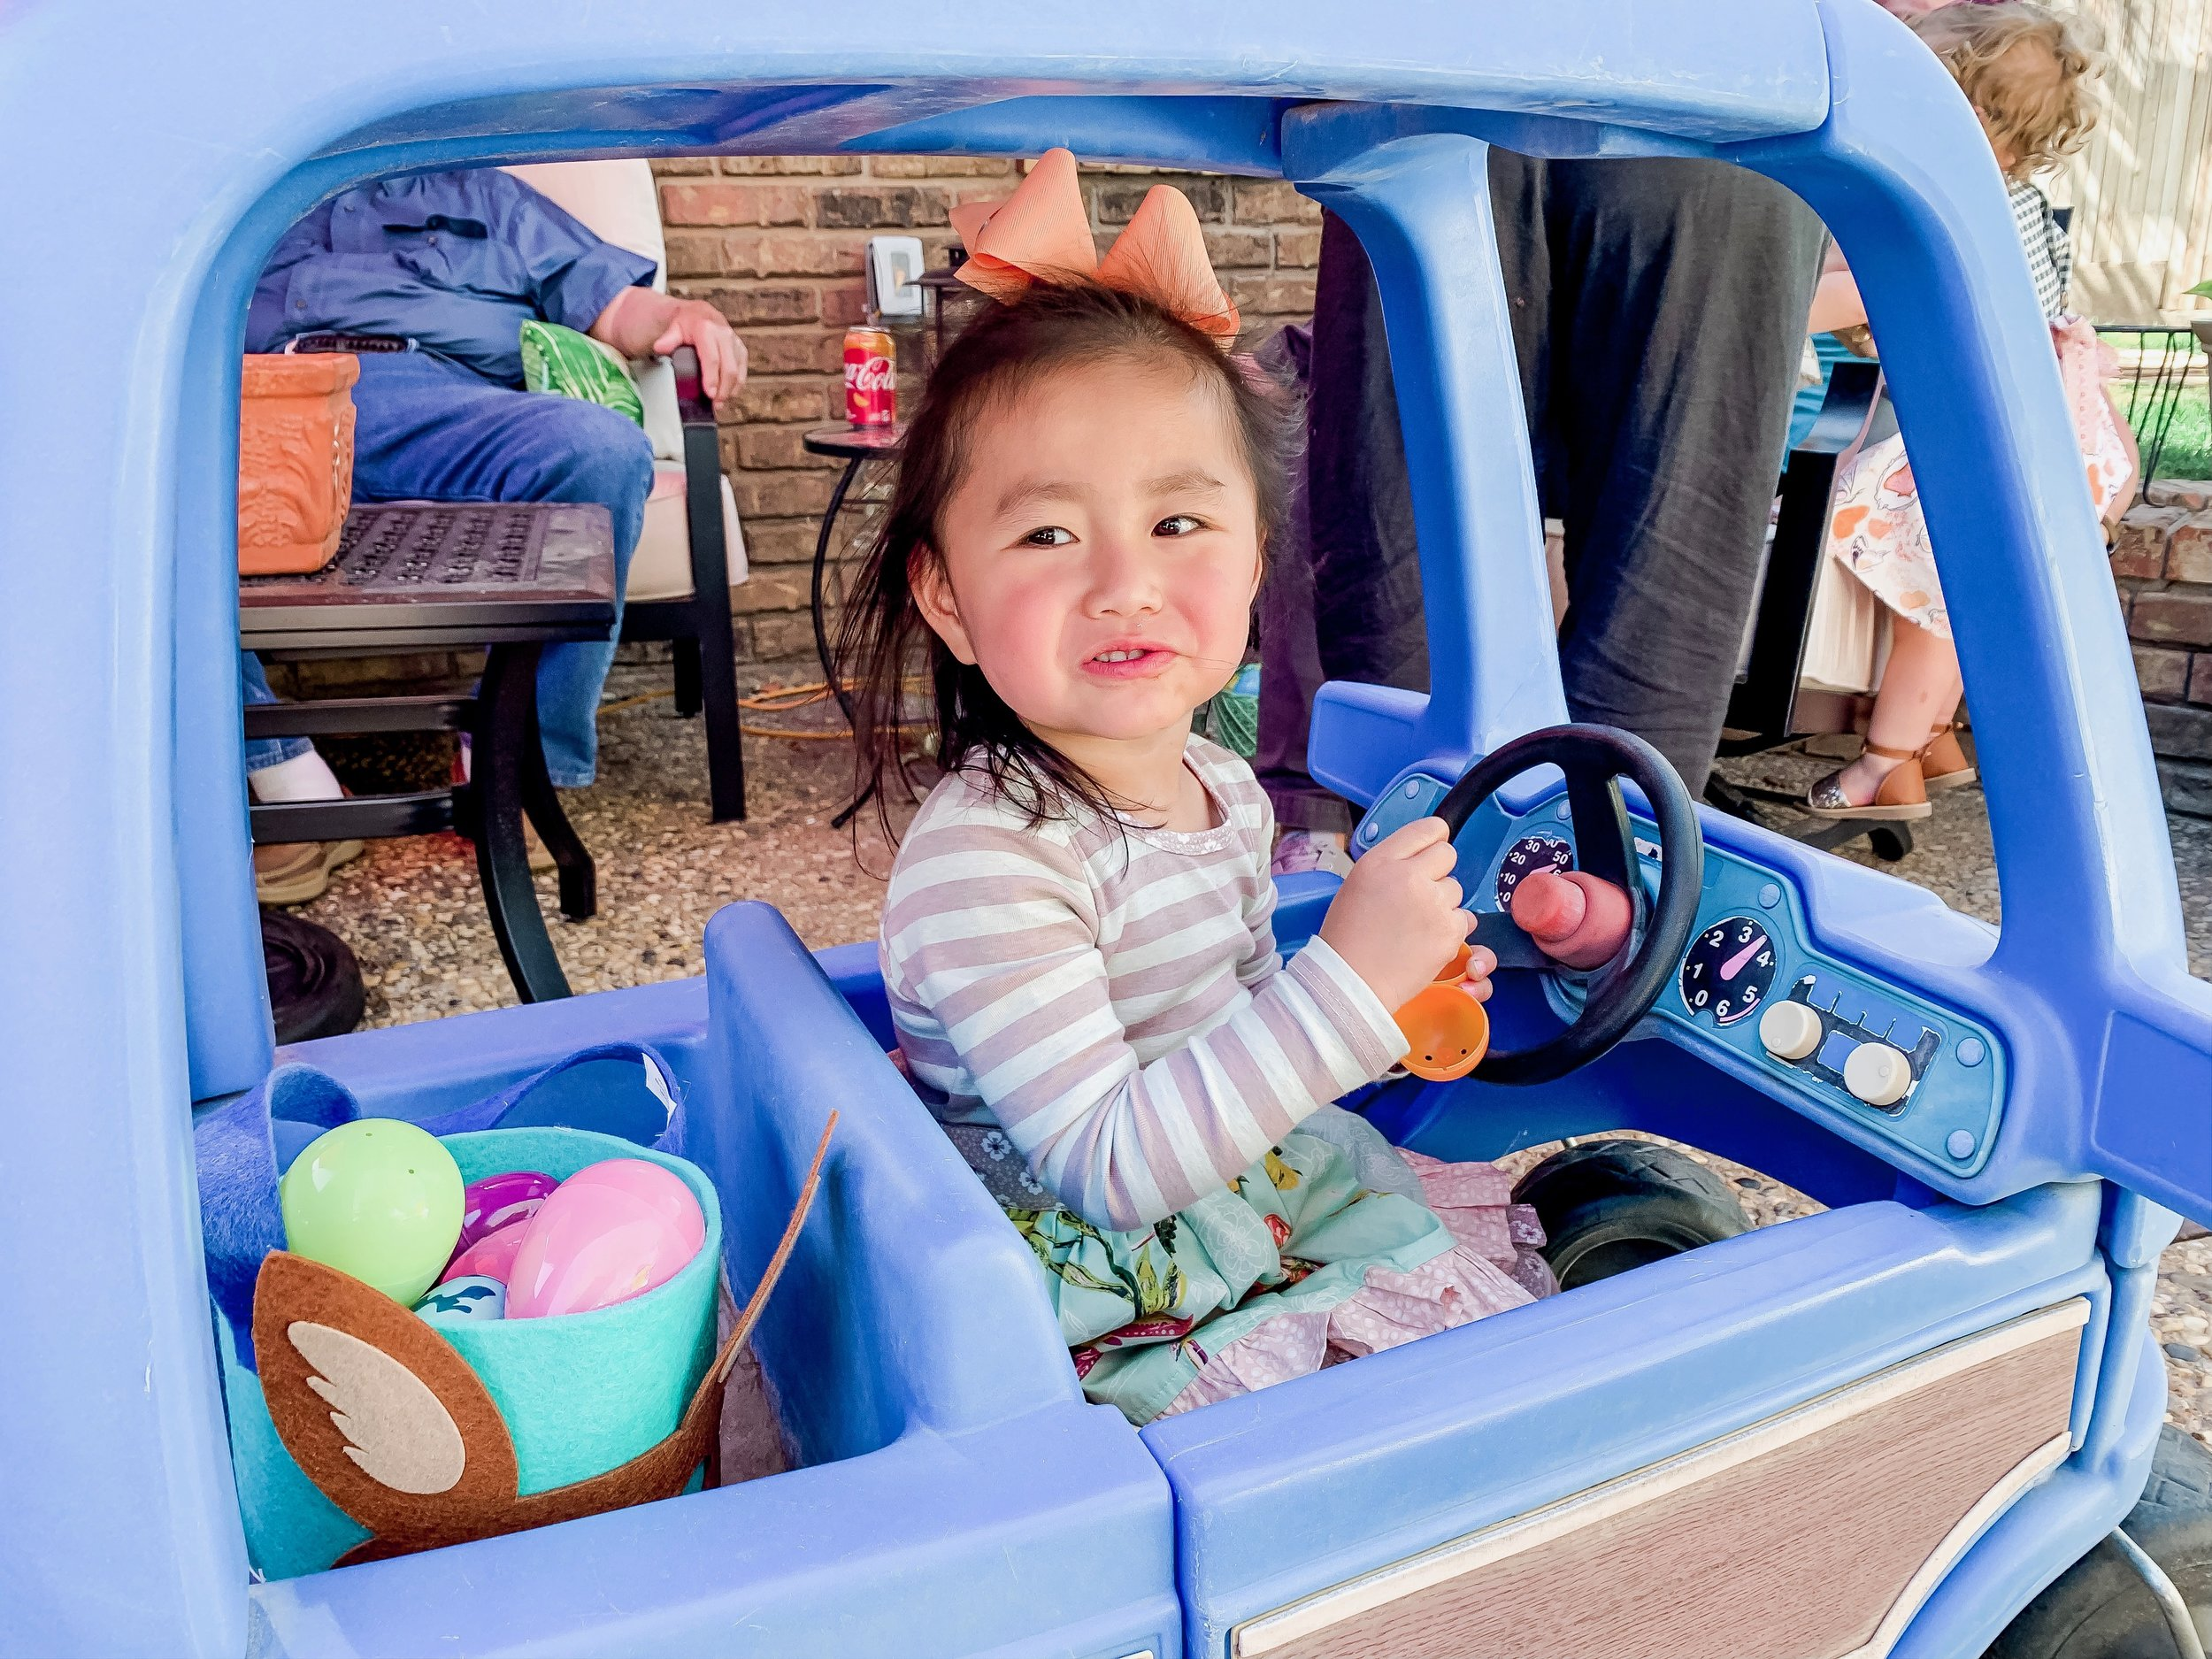 Lucy is a BIG fan of Easter. This was her first and she cracked us all up by settling into this car and proceeding to try to eat allllll the candy.